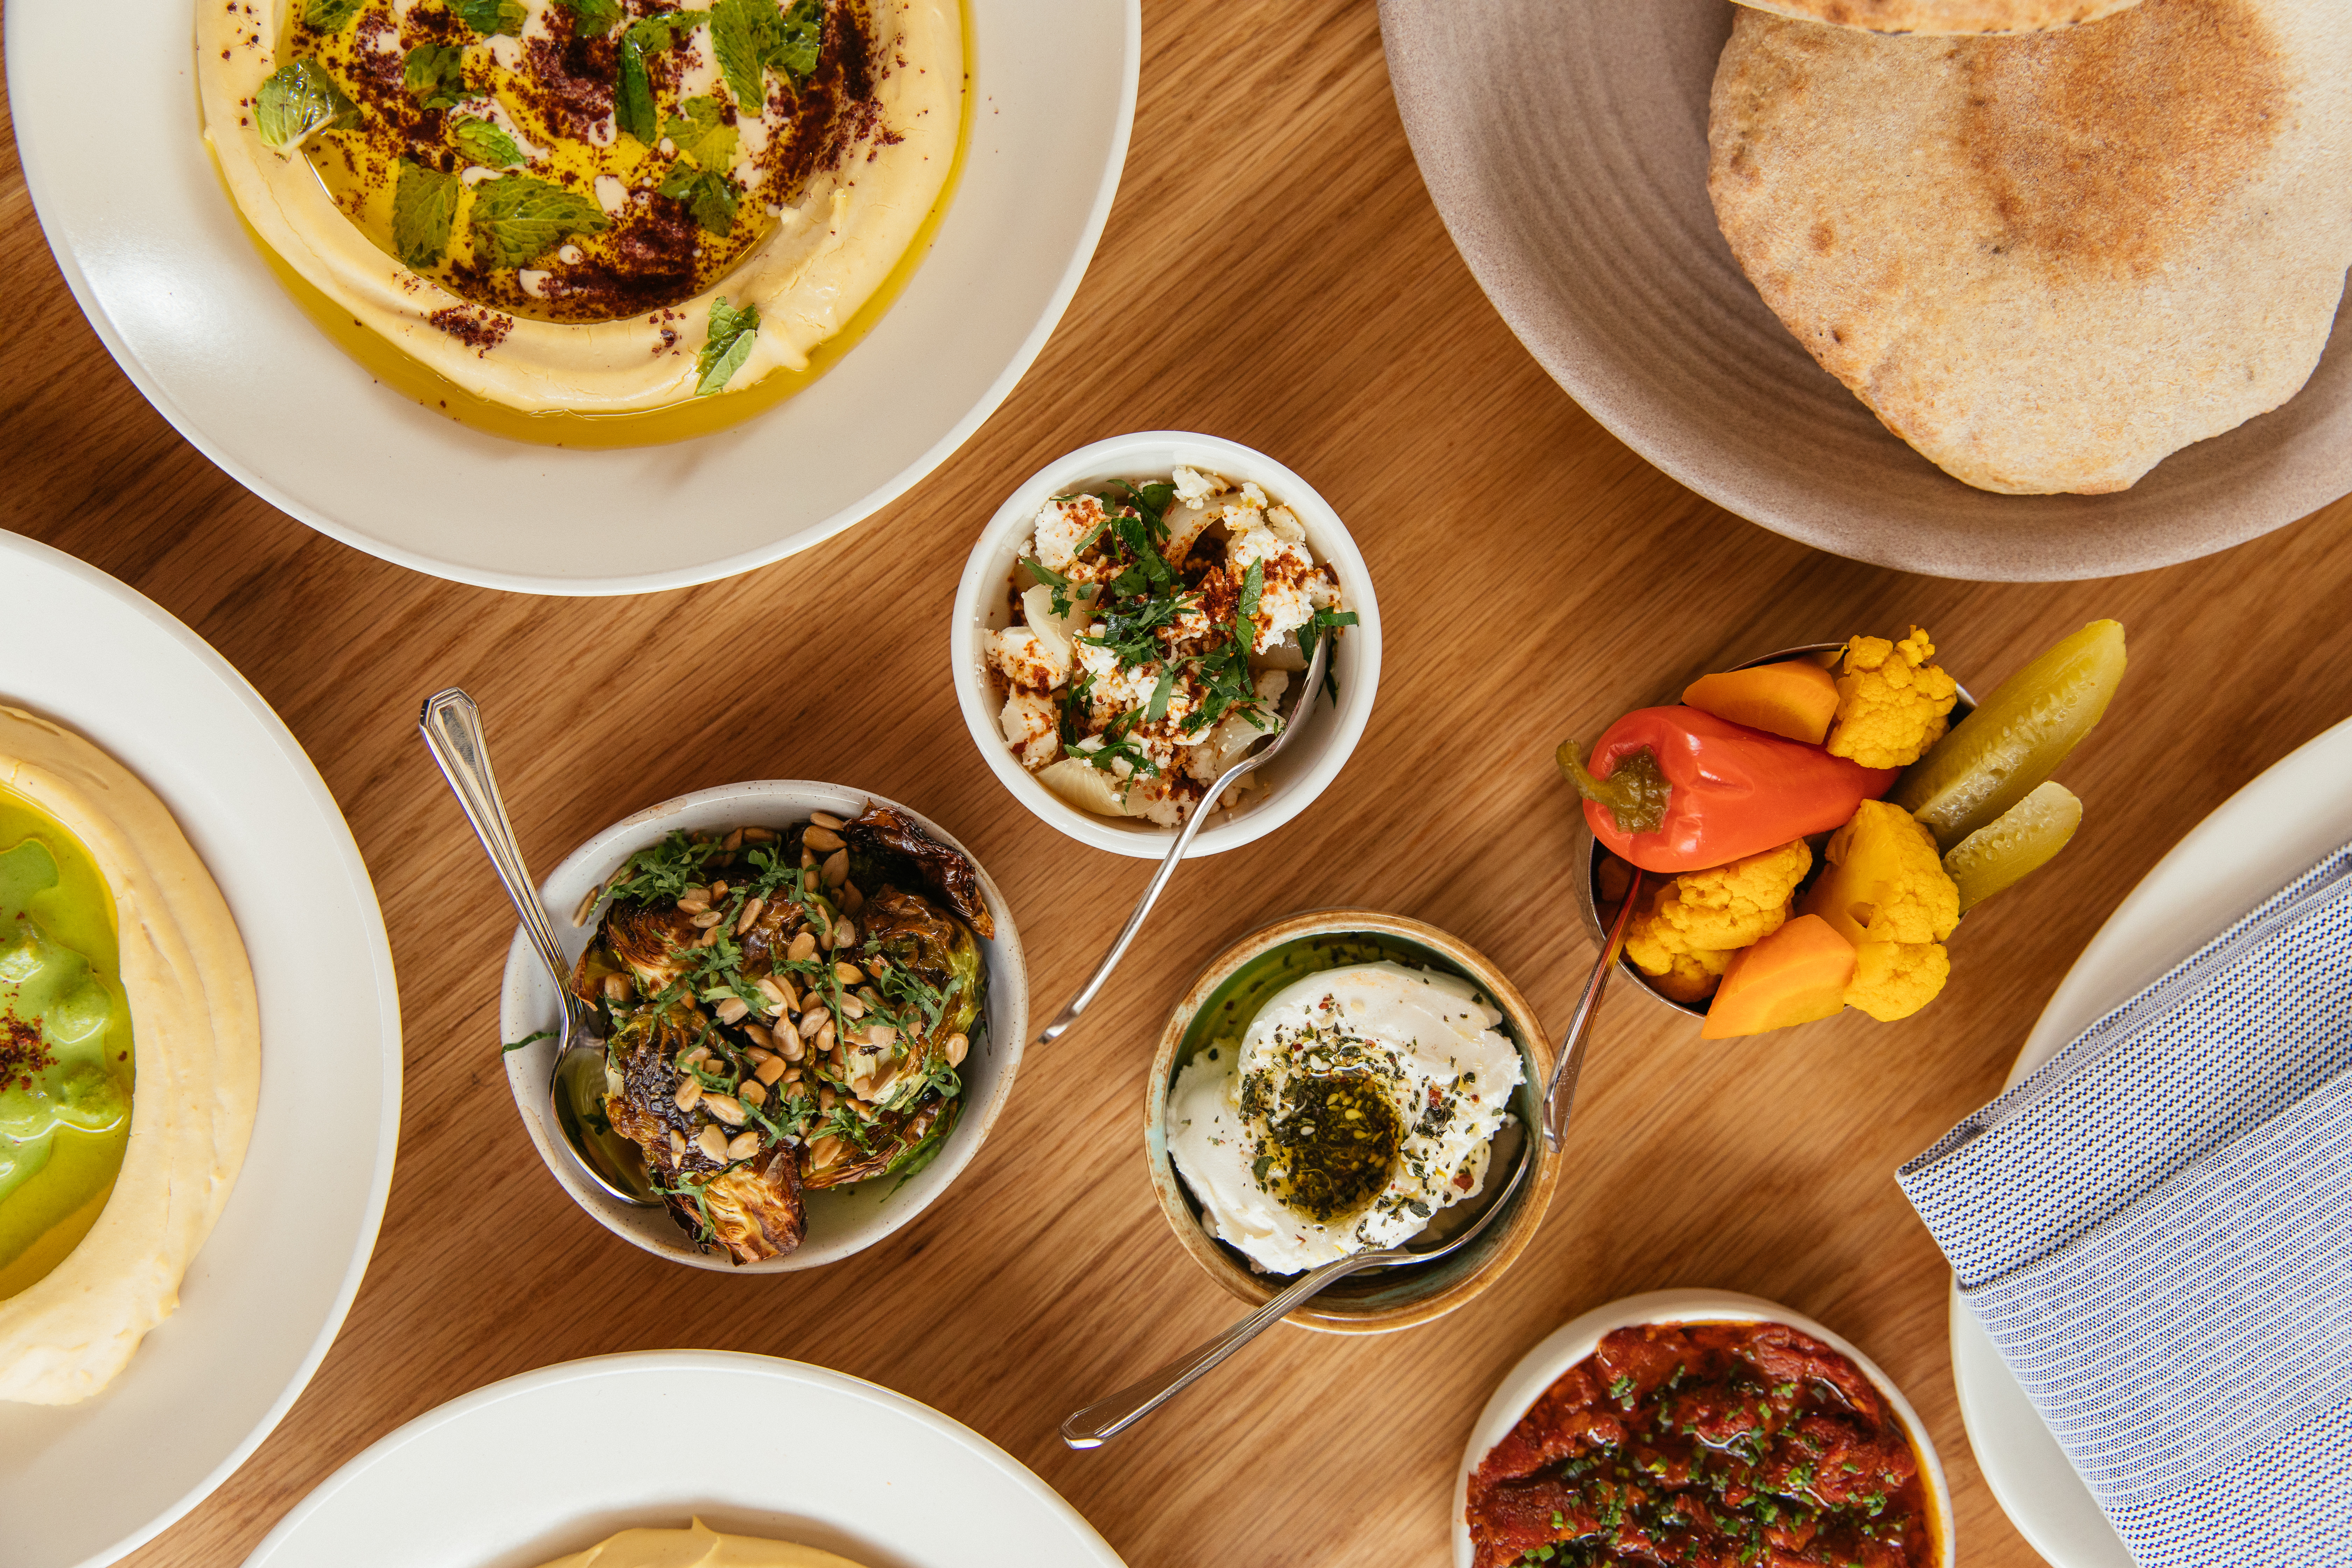 A spread of Middle Eastern spreads.